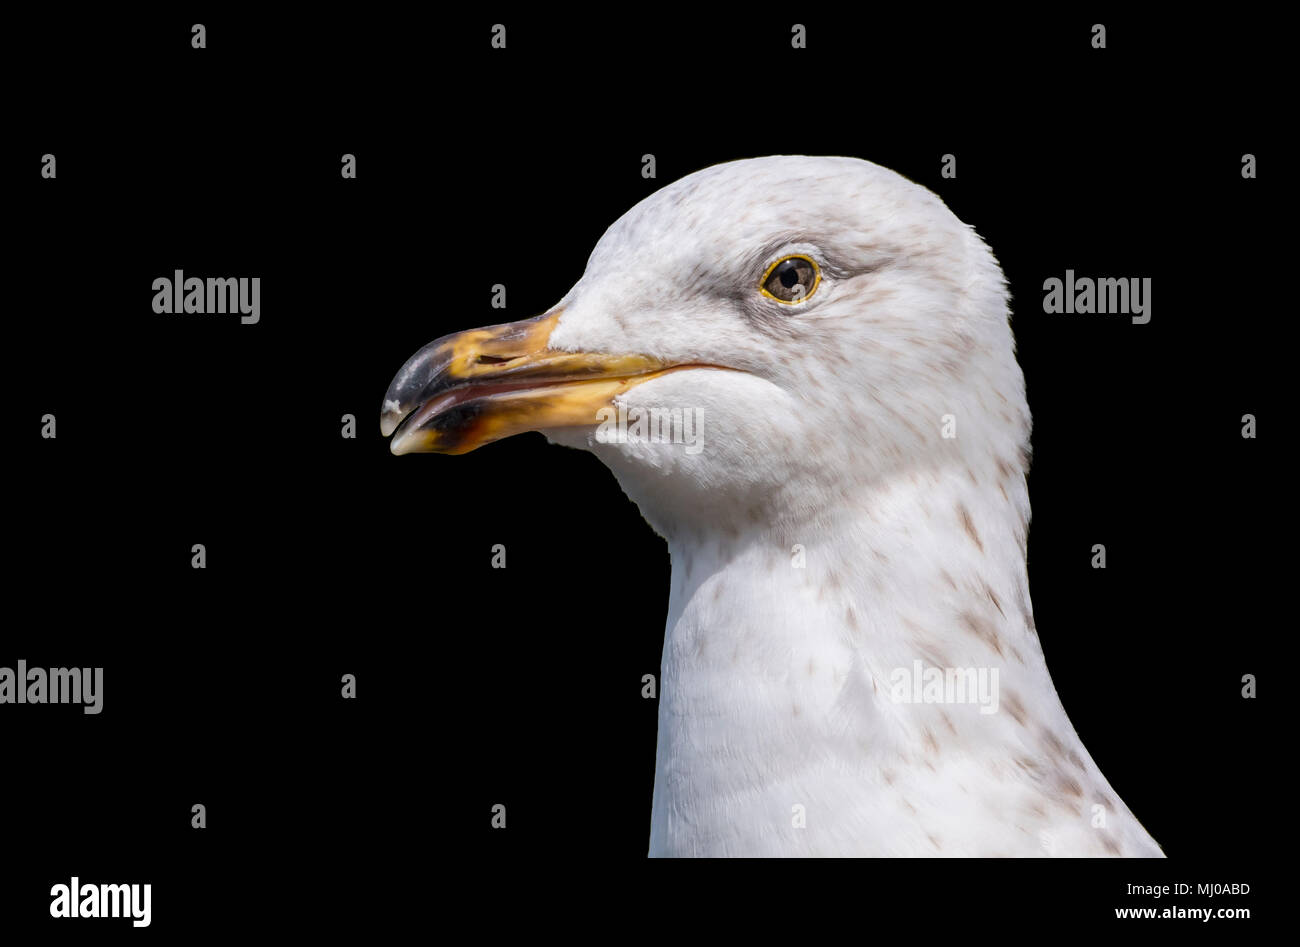 Close up of the head and beak of a Juvenile Herring Gull (Larus argentatus) in the UK on a black background. Seagull cutout closeup. - Stock Image